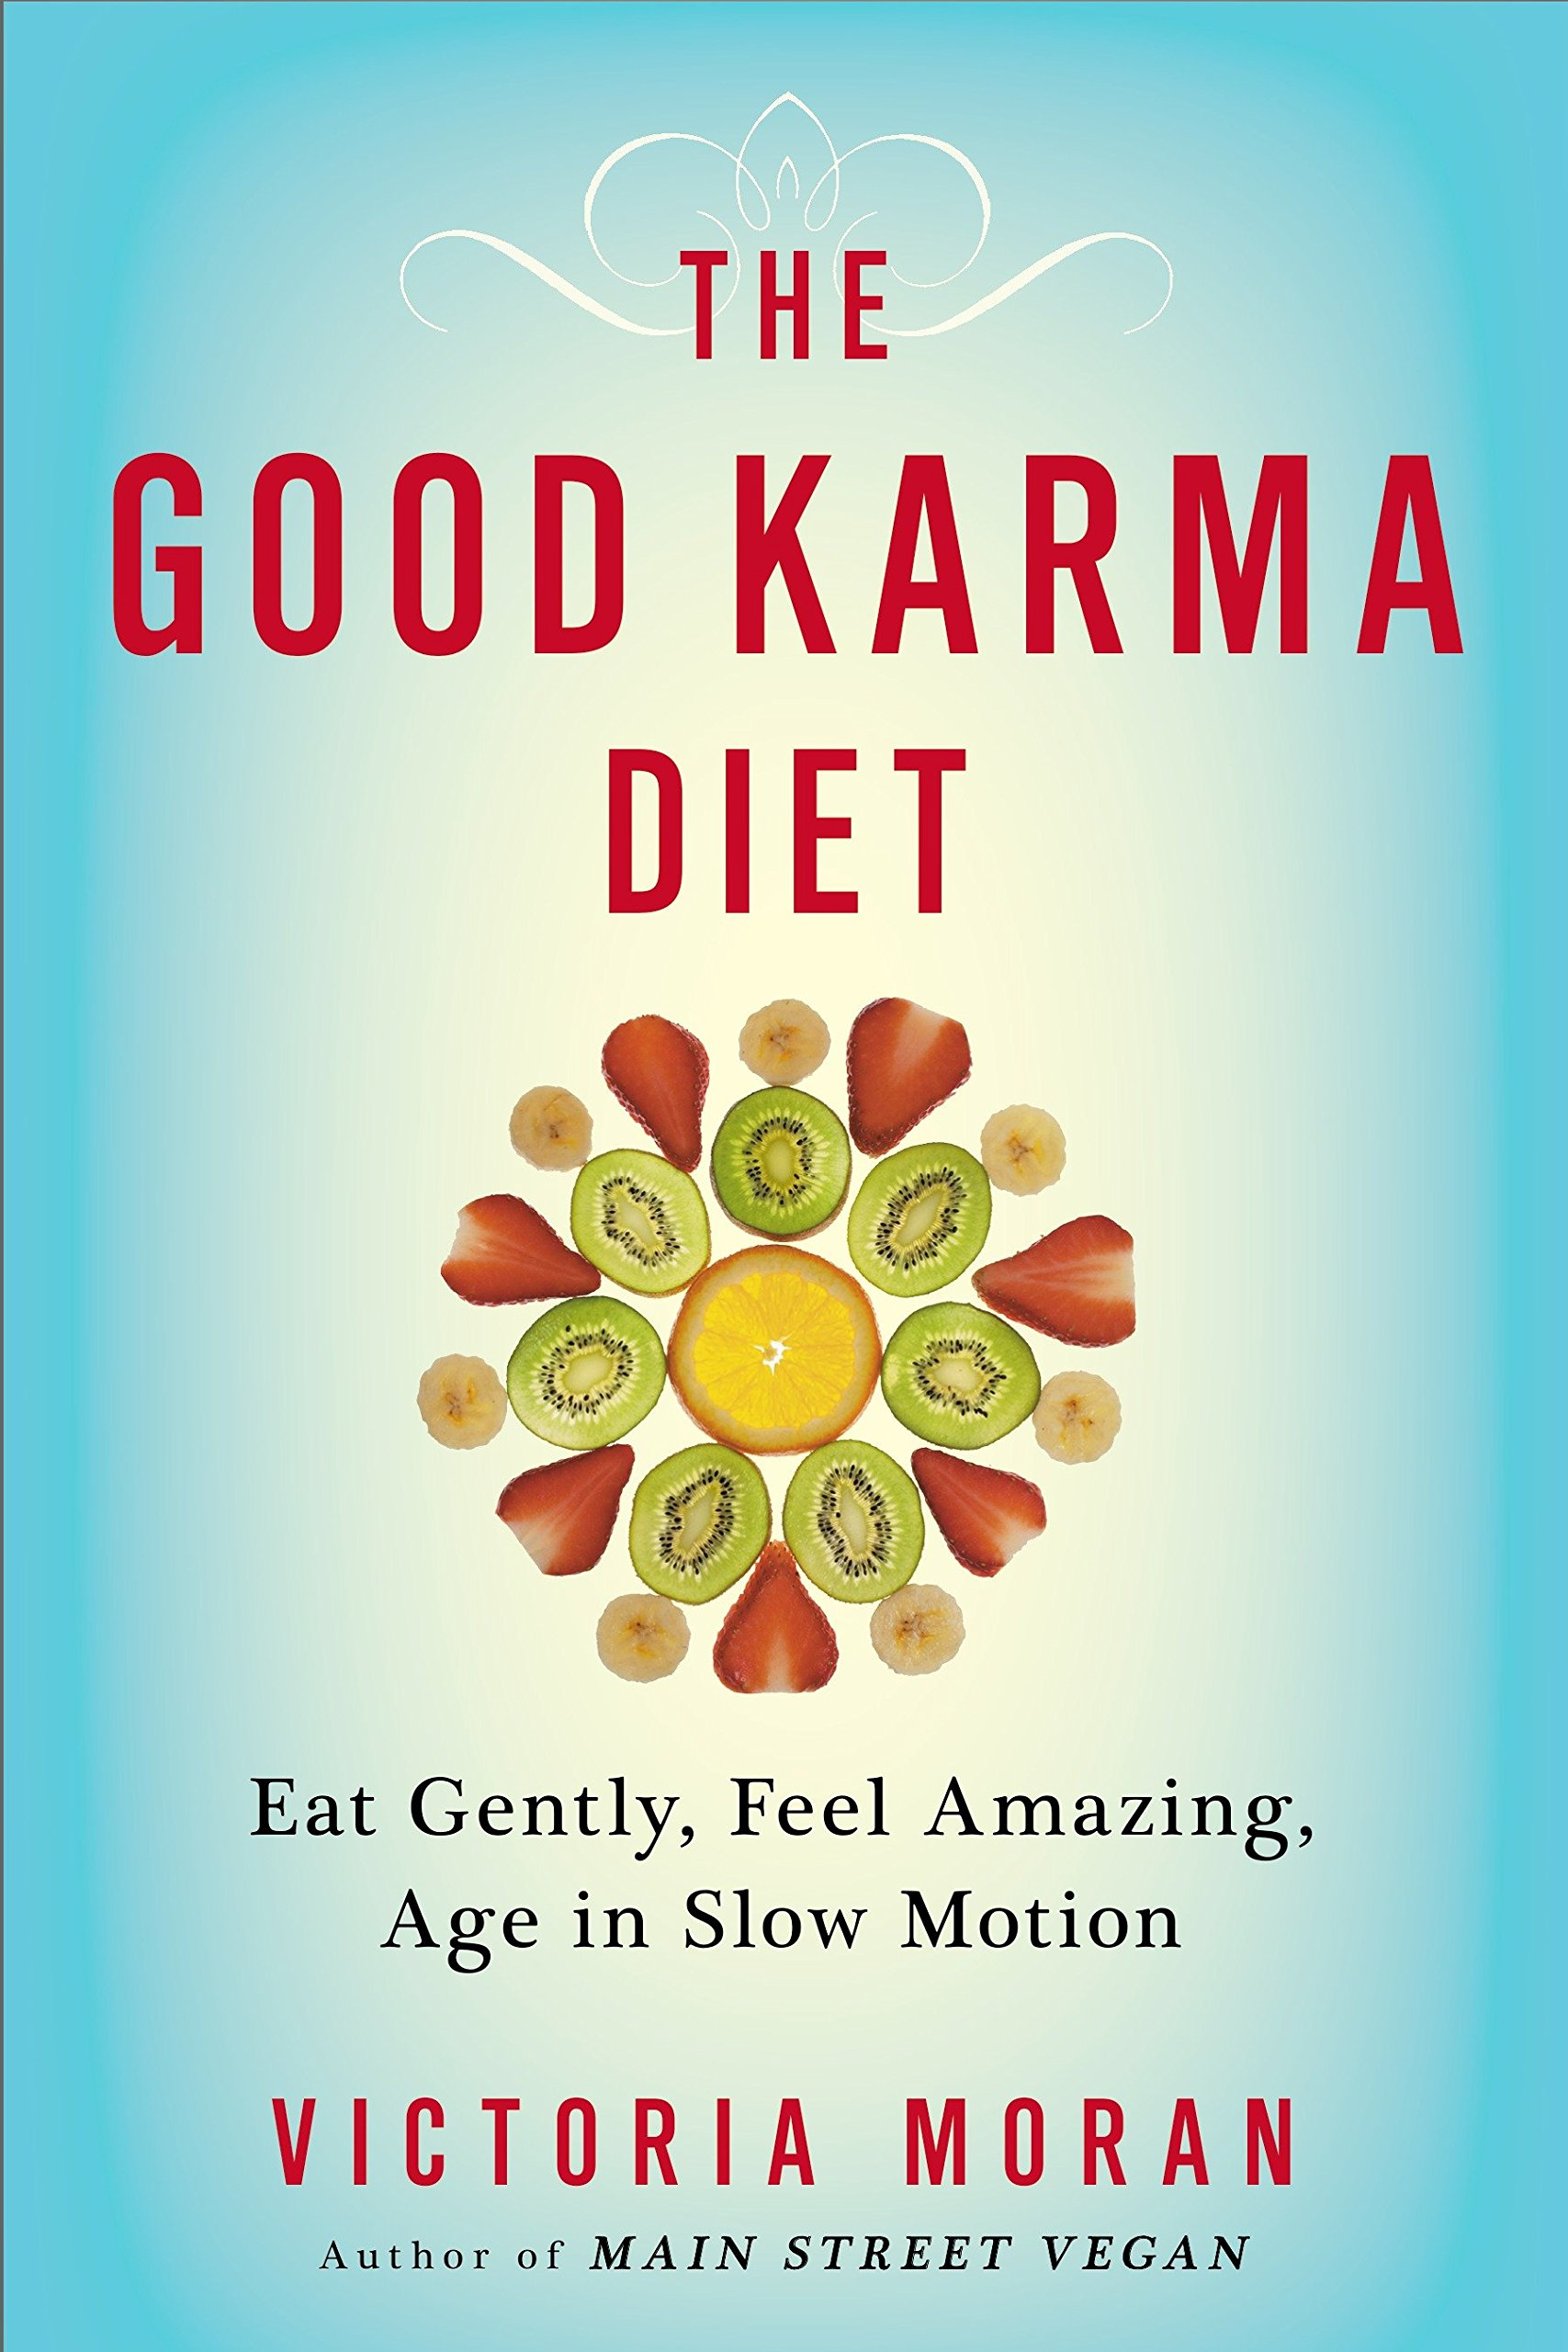 The Good Karma Diet: Eat Gently, Feel Amazing, Age in Slow Motion: Victoria  Moran: 0884295852748: Amazon.com: Books